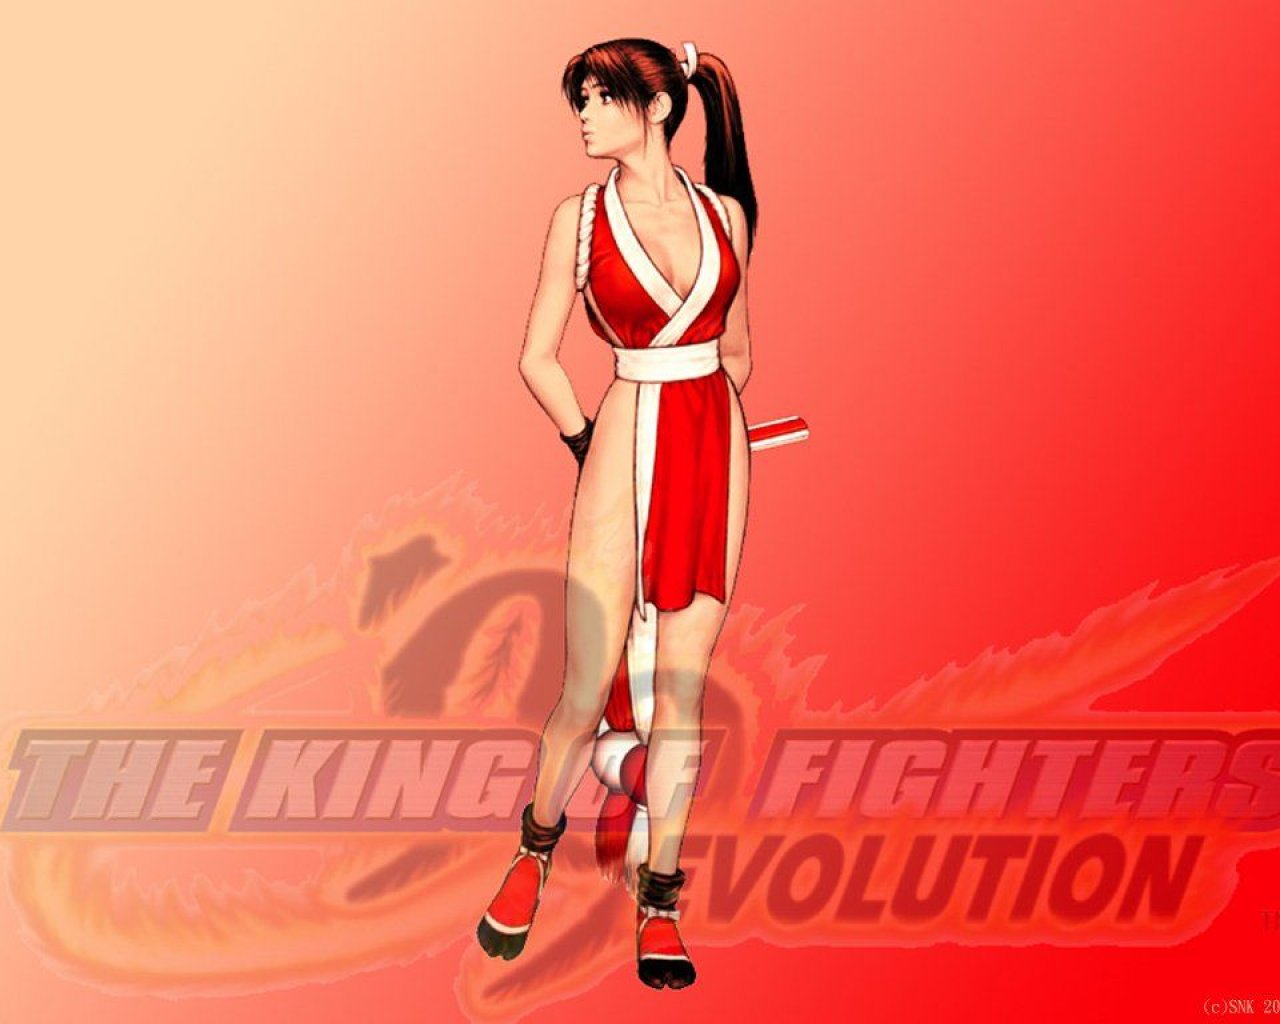 King Of Fighters Wallpapers Download King Of Fighters Wallpapers Images, Photos, Reviews